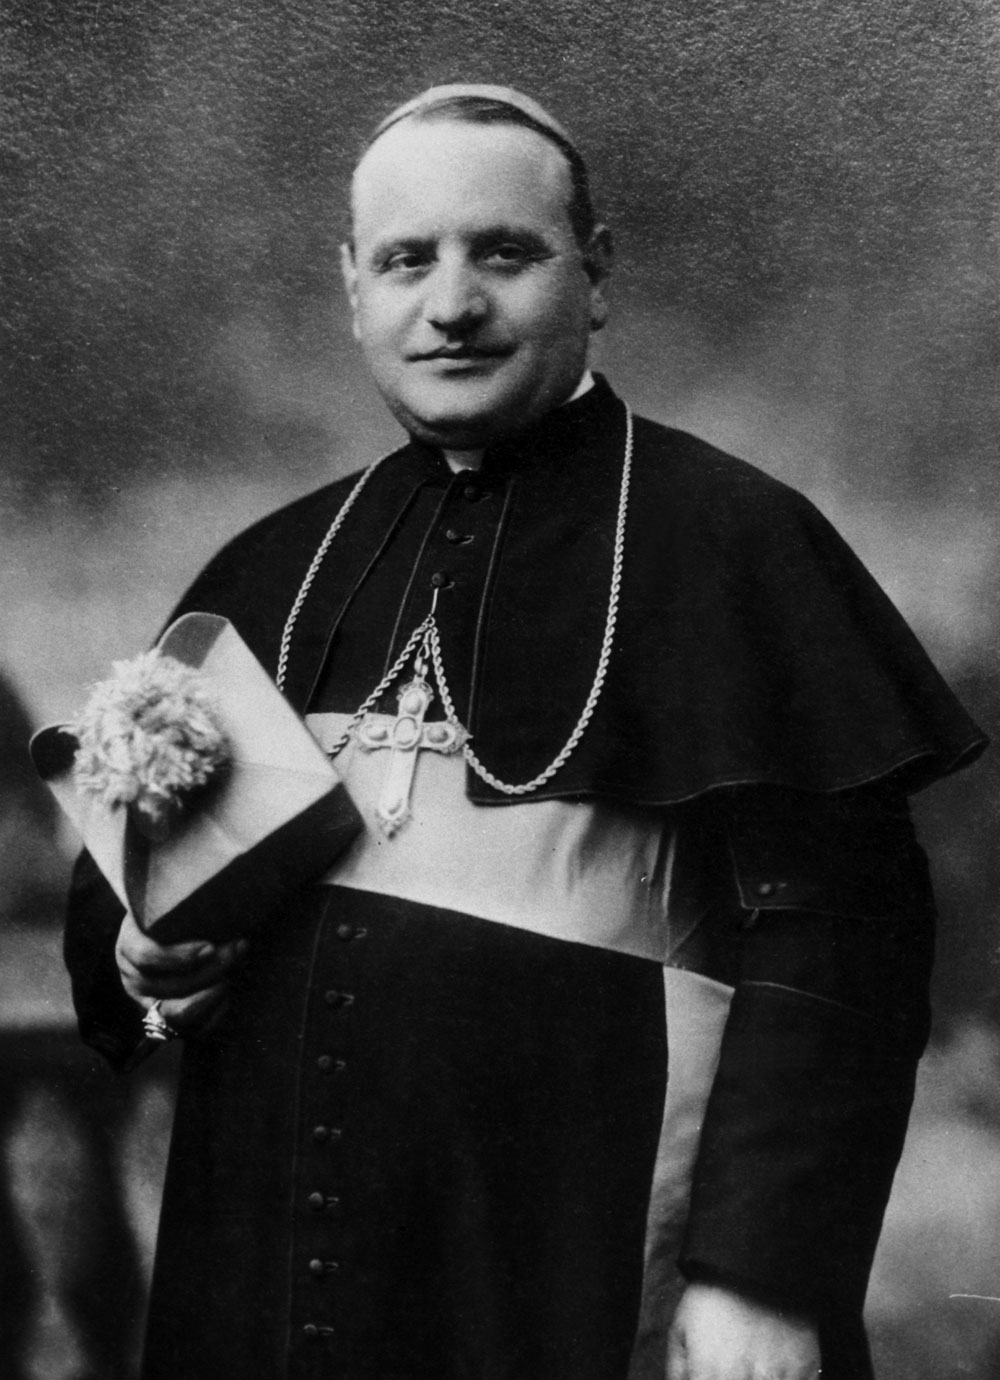 pope-john-xxiii-as-bishop